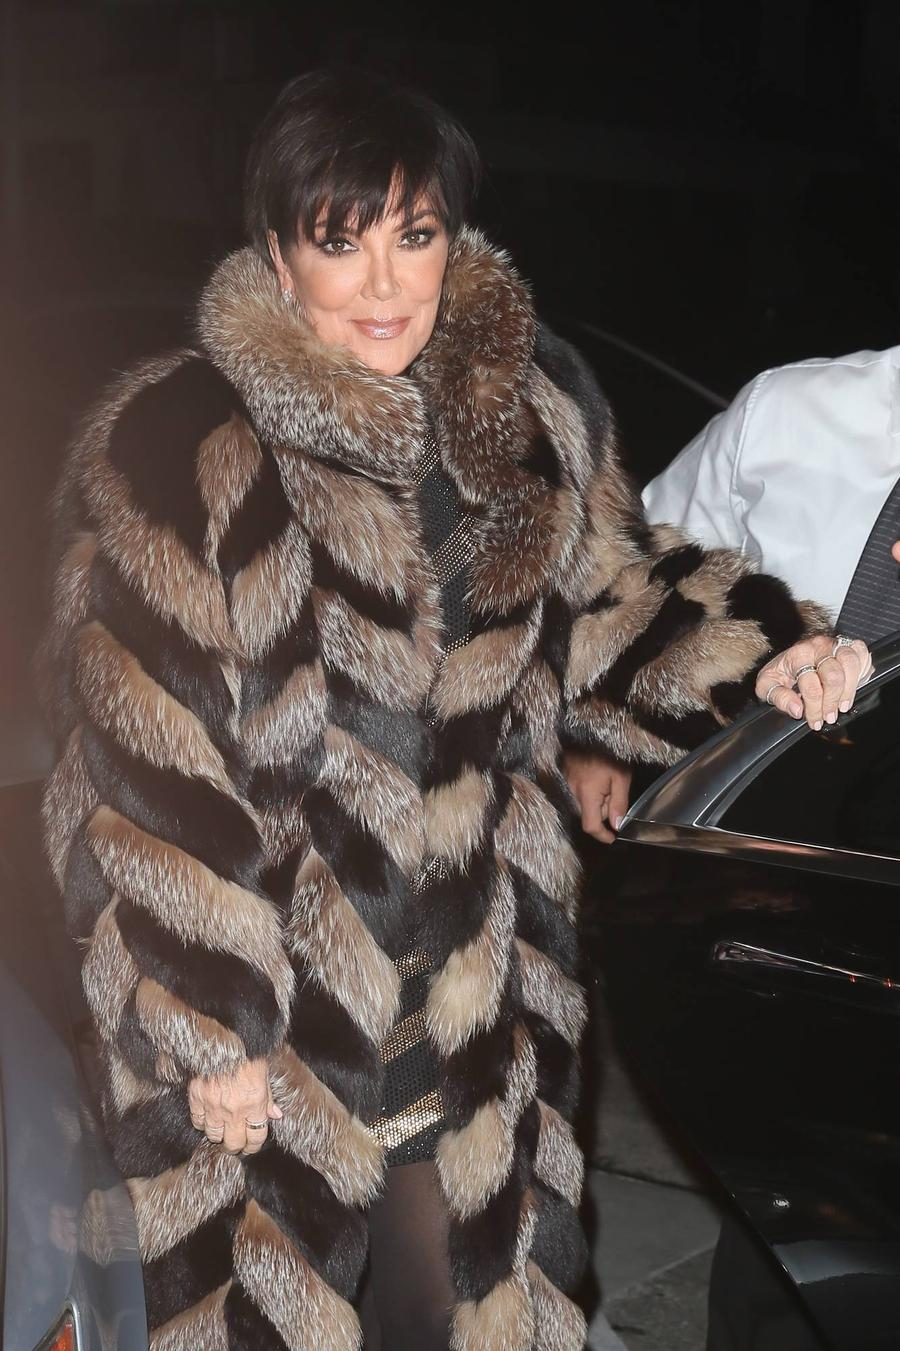 Kris Jenner: 'I Felt Powerless After Lamar's Overdose'